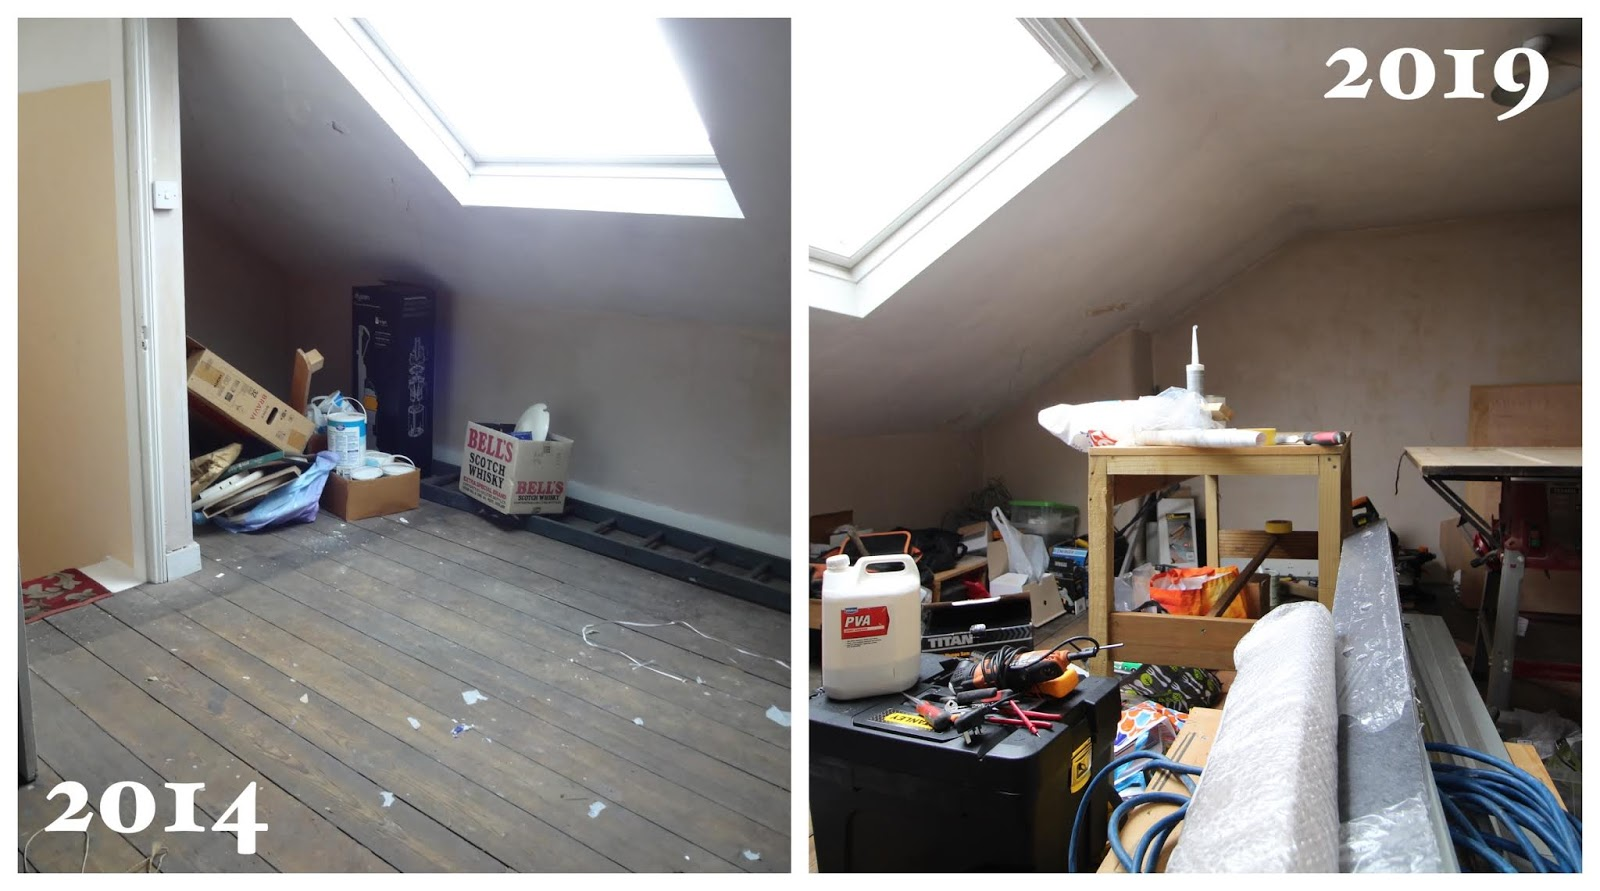 attic bedroom renovation before and after 5 years